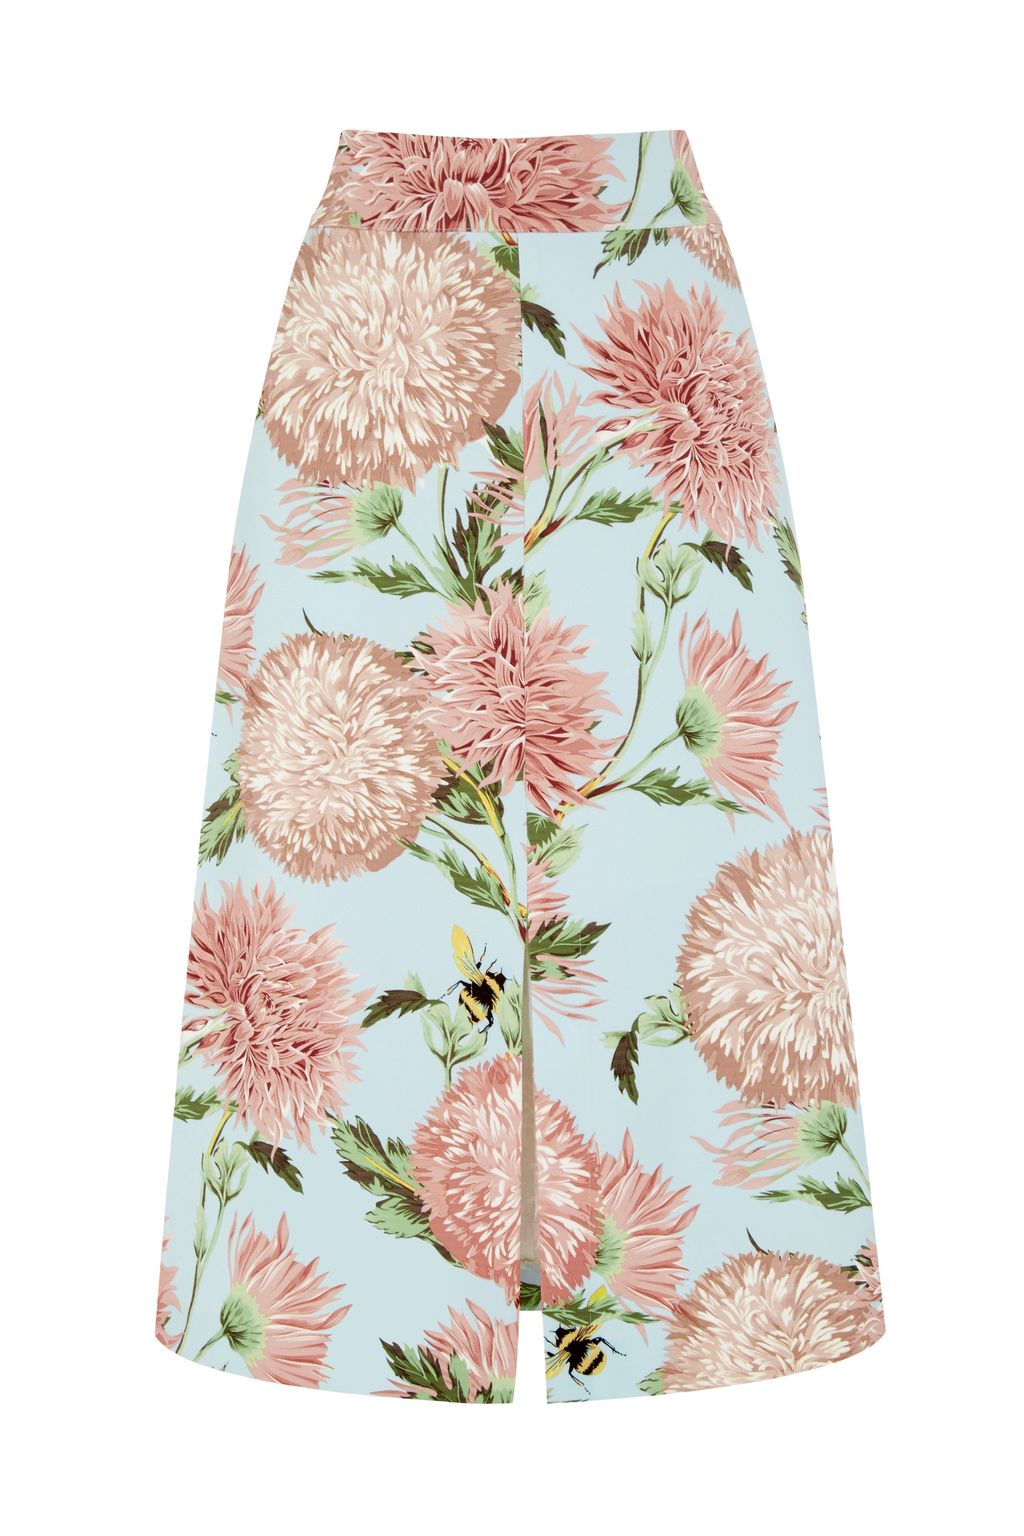 Pom Pom Print Floral Skirt, Multi Coloured - length: calf length; fit: loose/voluminous; waist: high rise; hip detail: draws attention to hips; predominant colour: pale blue; occasions: casual, creative work; style: a-line; fibres: polyester/polyamide - 100%; texture group: crepes; pattern type: fabric; pattern: florals; secondary colour: dusky pink; multicoloured: multicoloured; season: s/s 2016; wardrobe: highlight